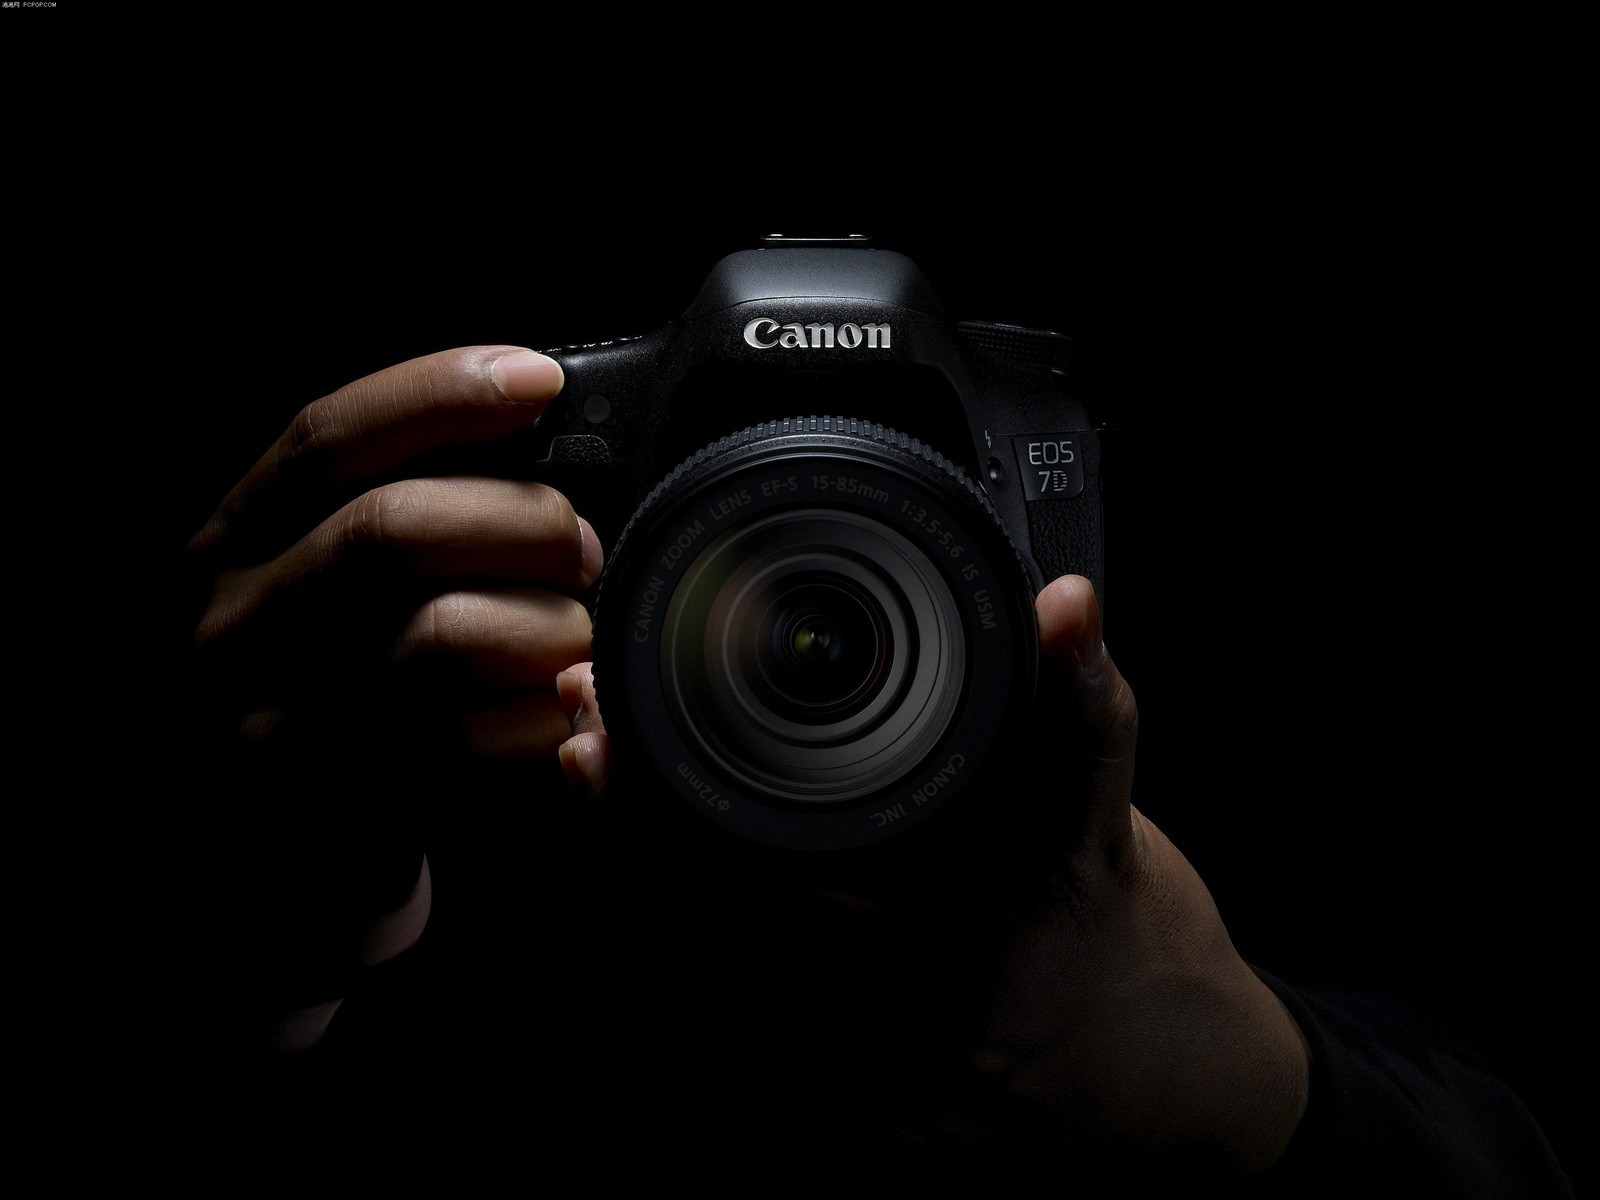 Camera Wallpaper And Background Image 1600x1200 Id264573